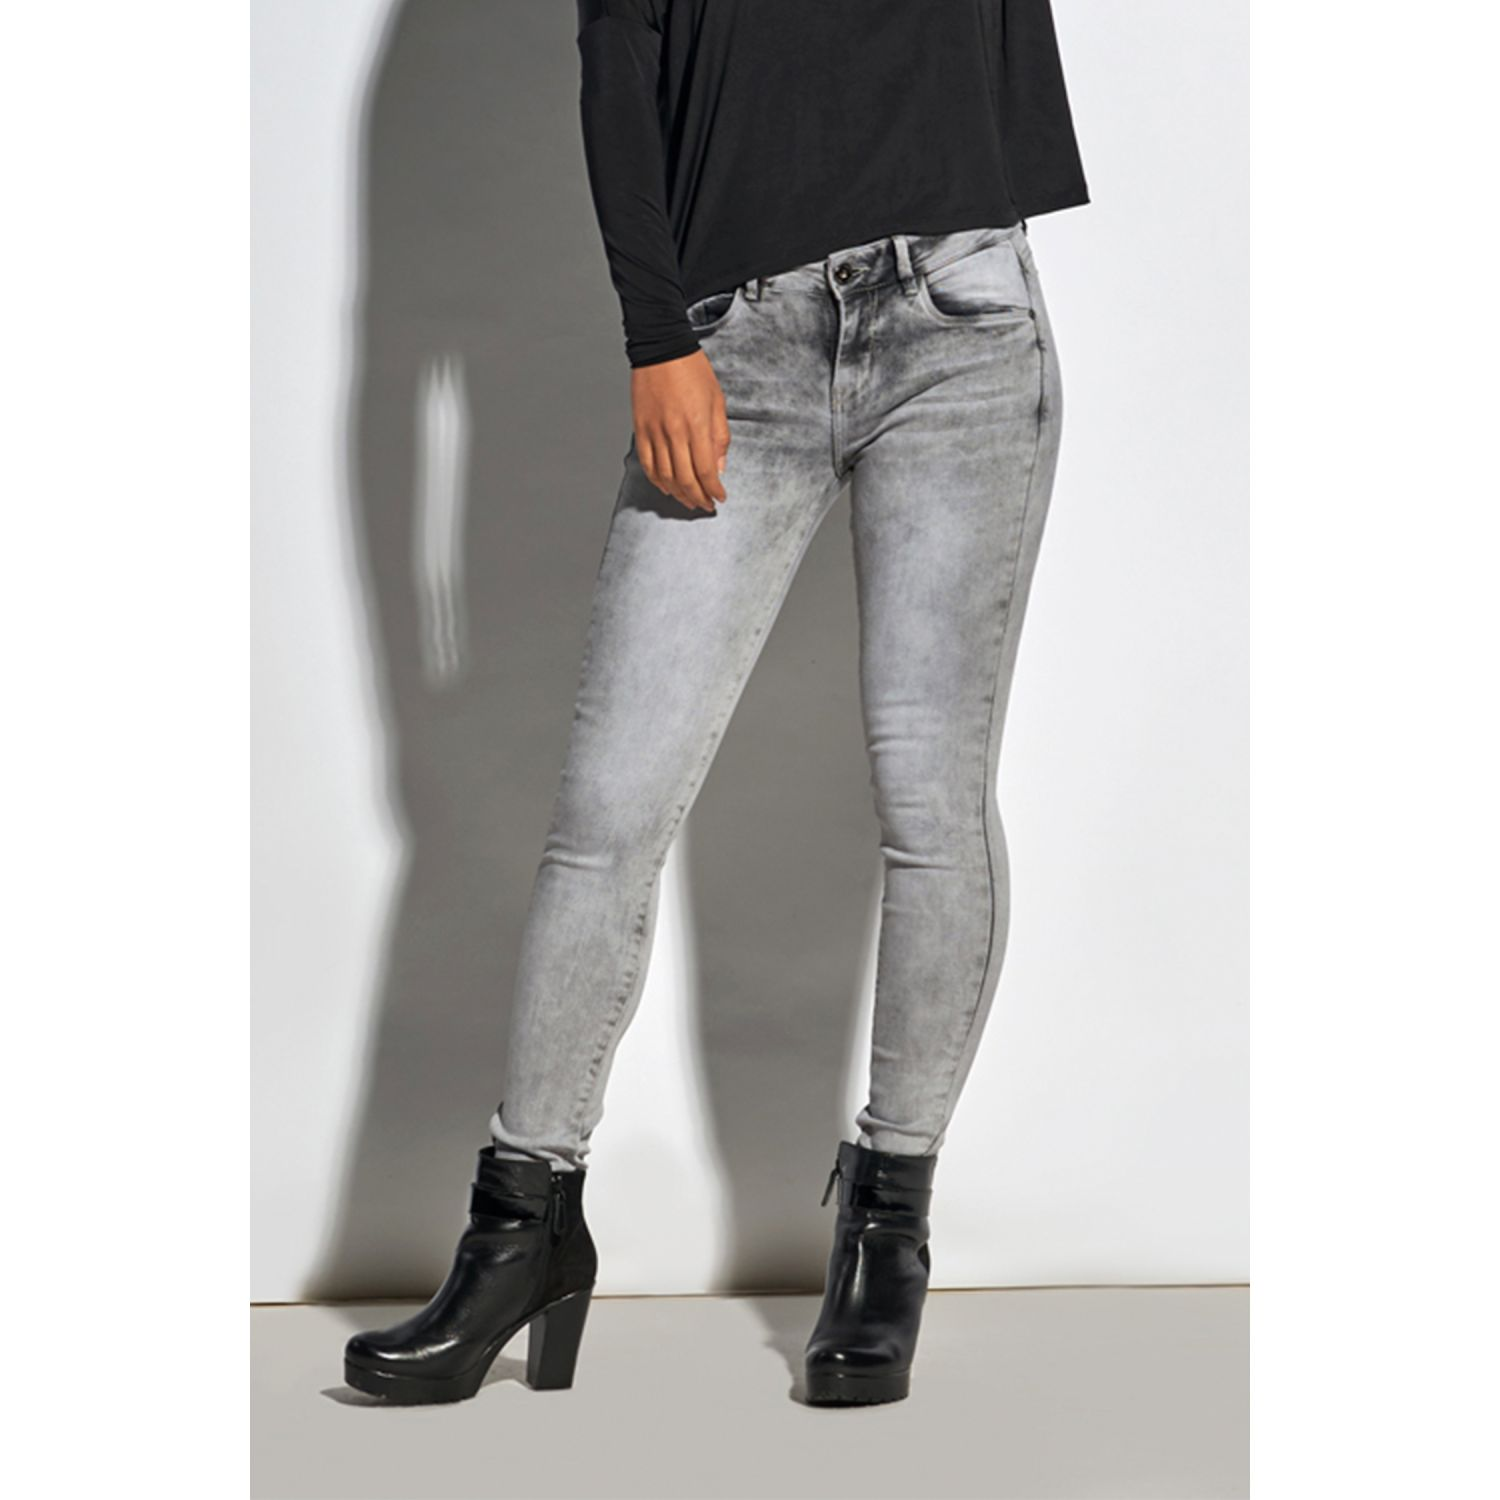 Octo Denim Co laura Gris Casual